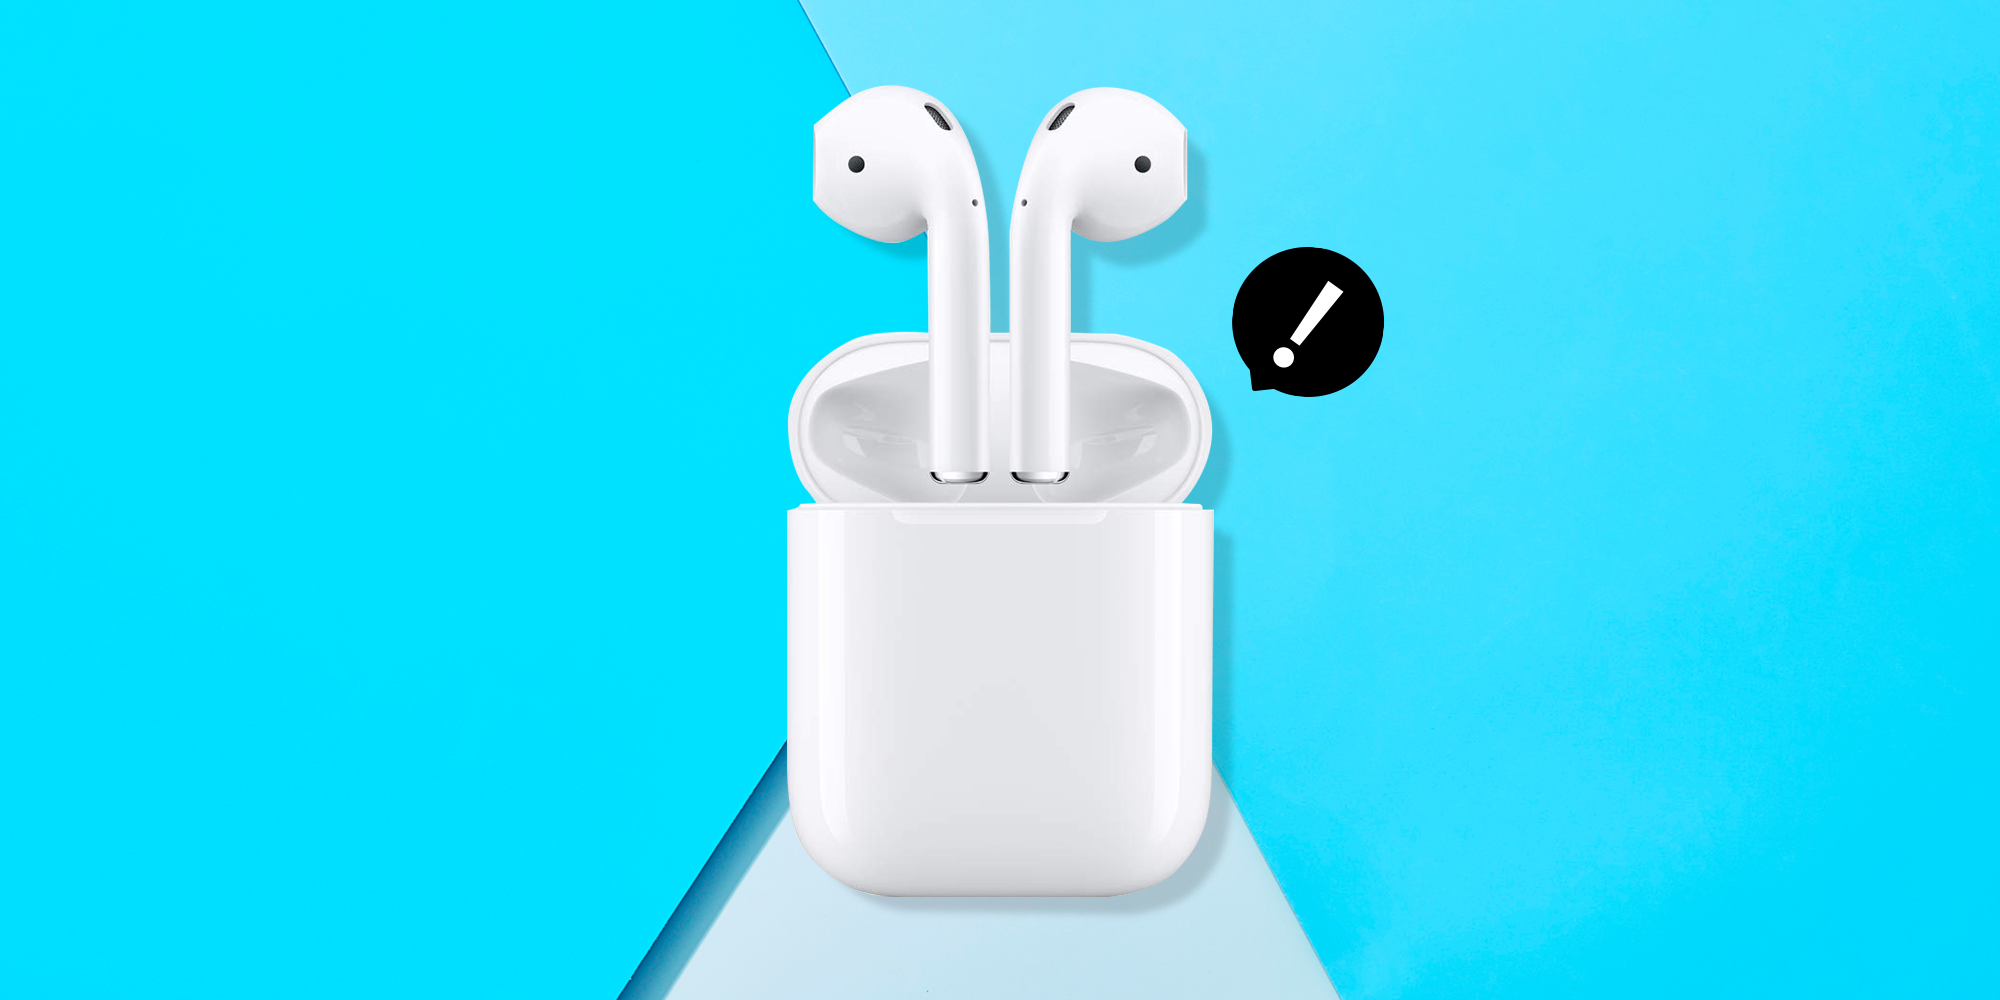 Apple's AirPods Are On Sale On Amazon At Their Lowest Price Ever Right Now